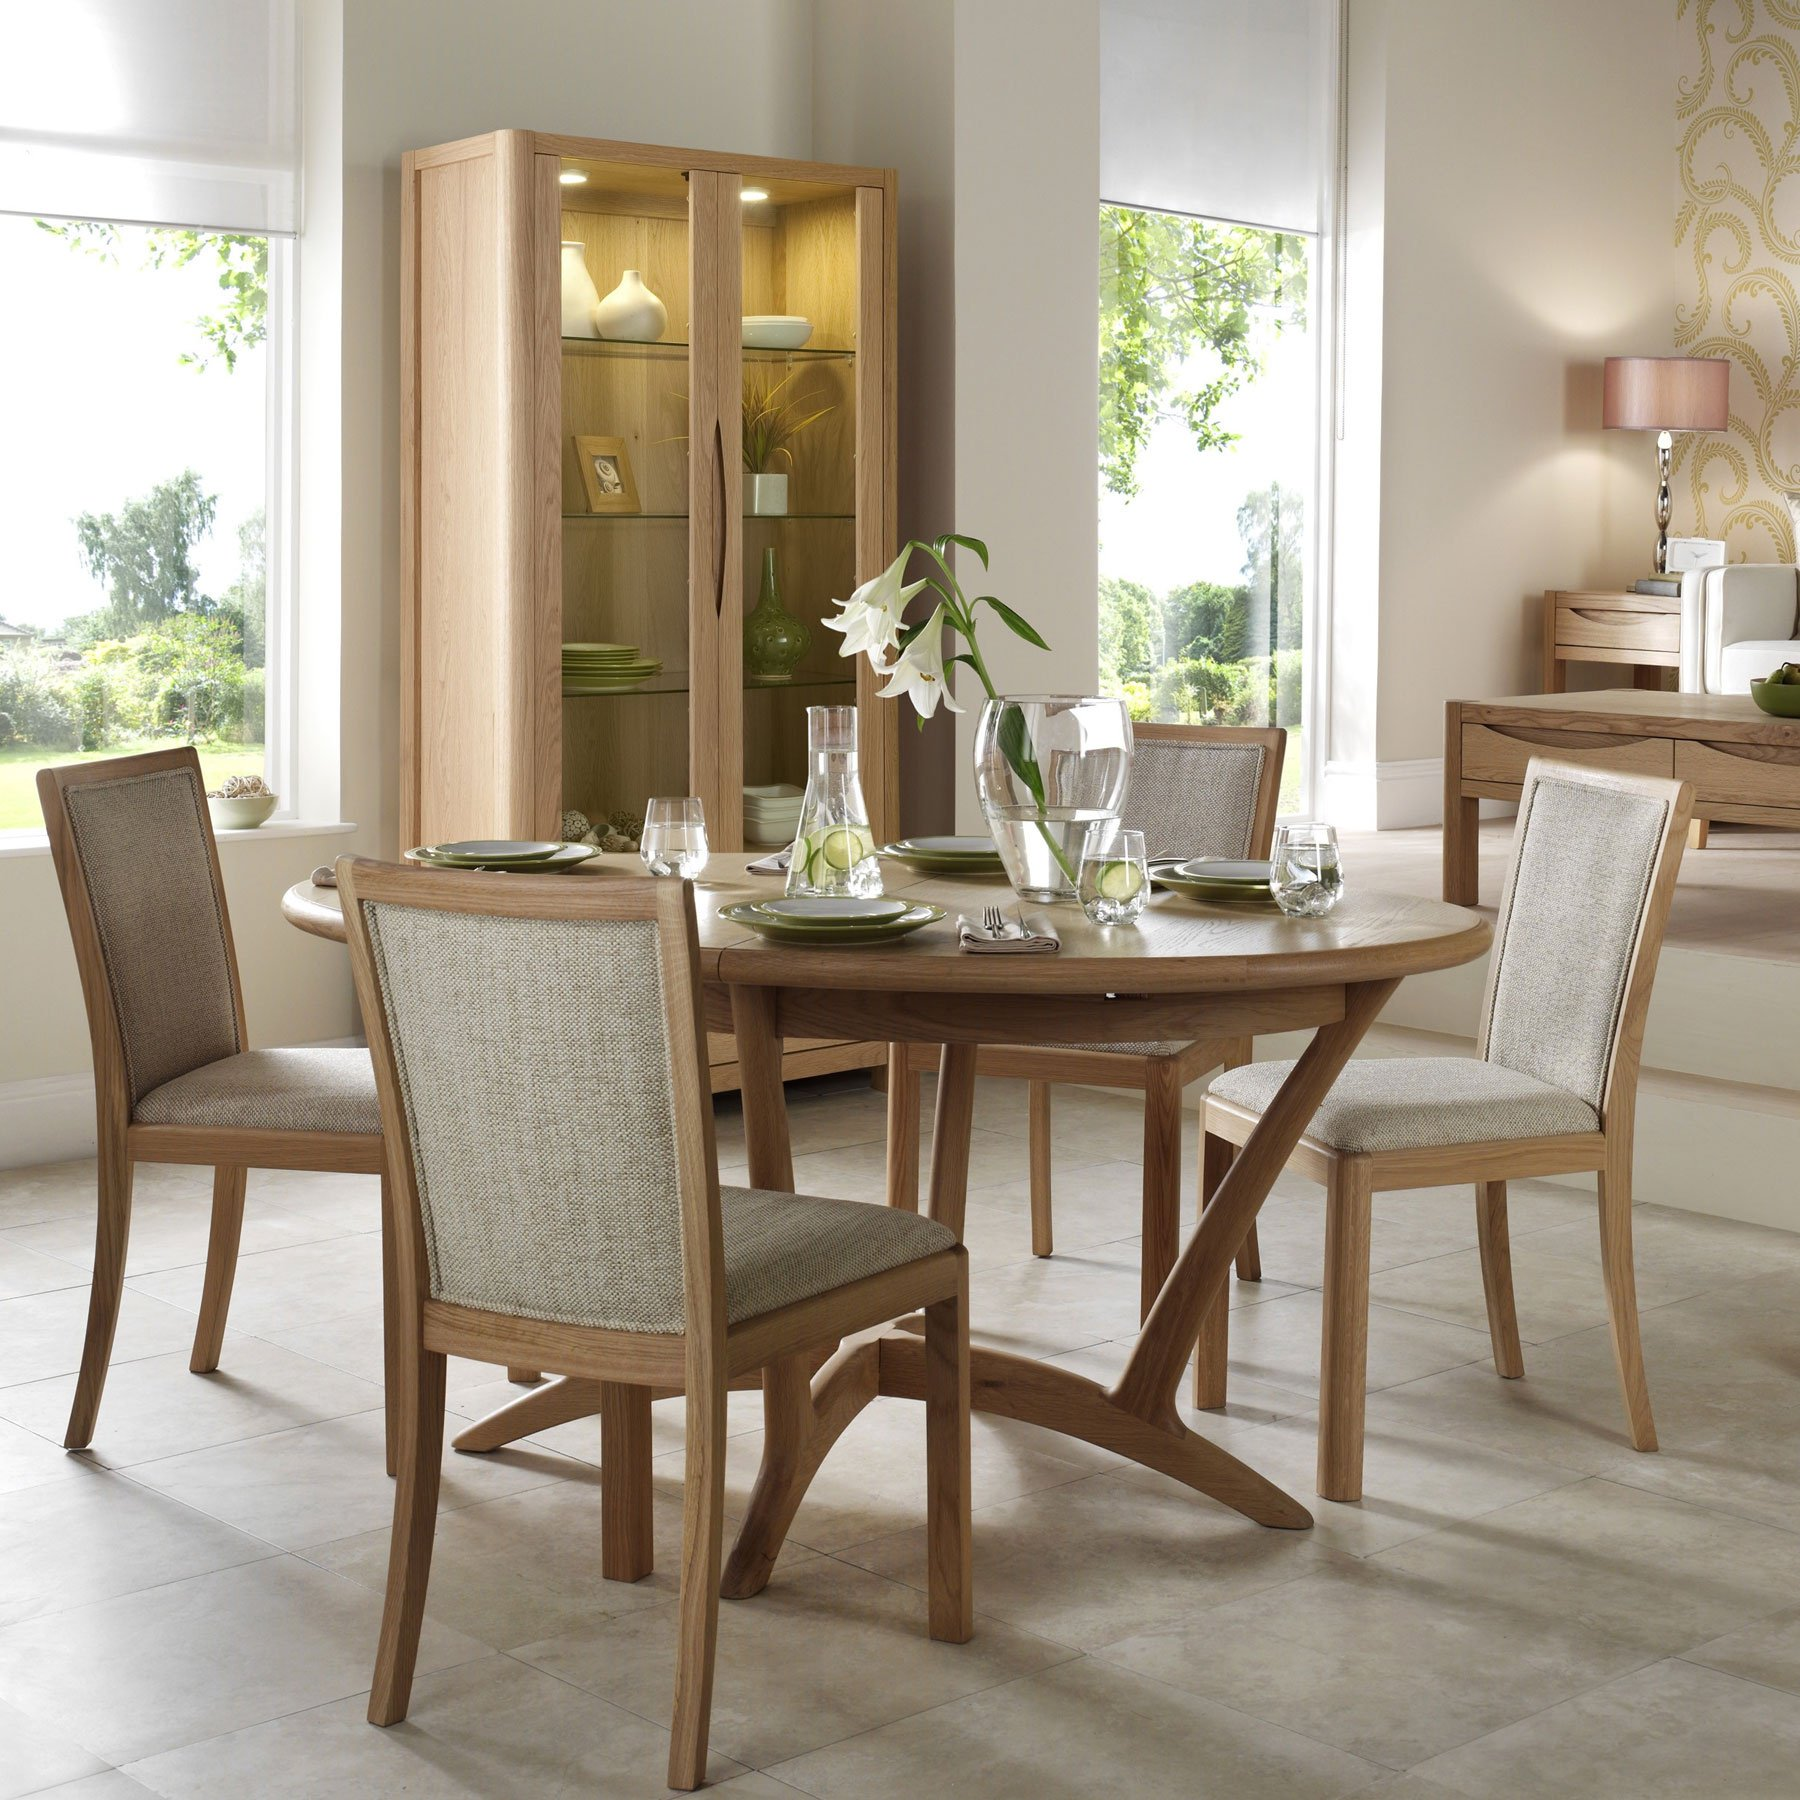 Oslo Light Oak Oval Extending 210cm Dining Table & 4 Fabric Chairs